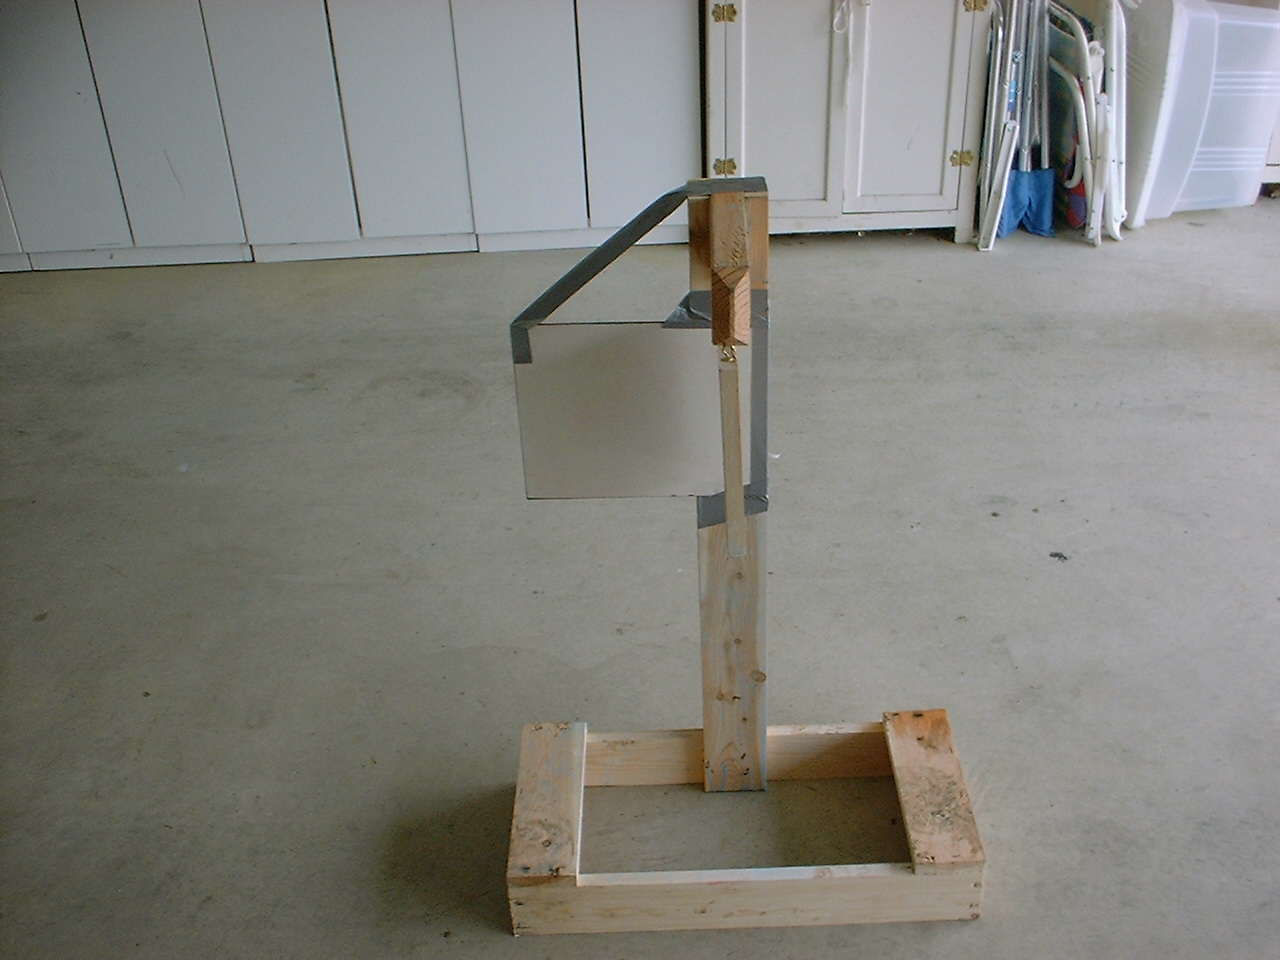 What Was The Conclusion Of The Pendulum Experiment